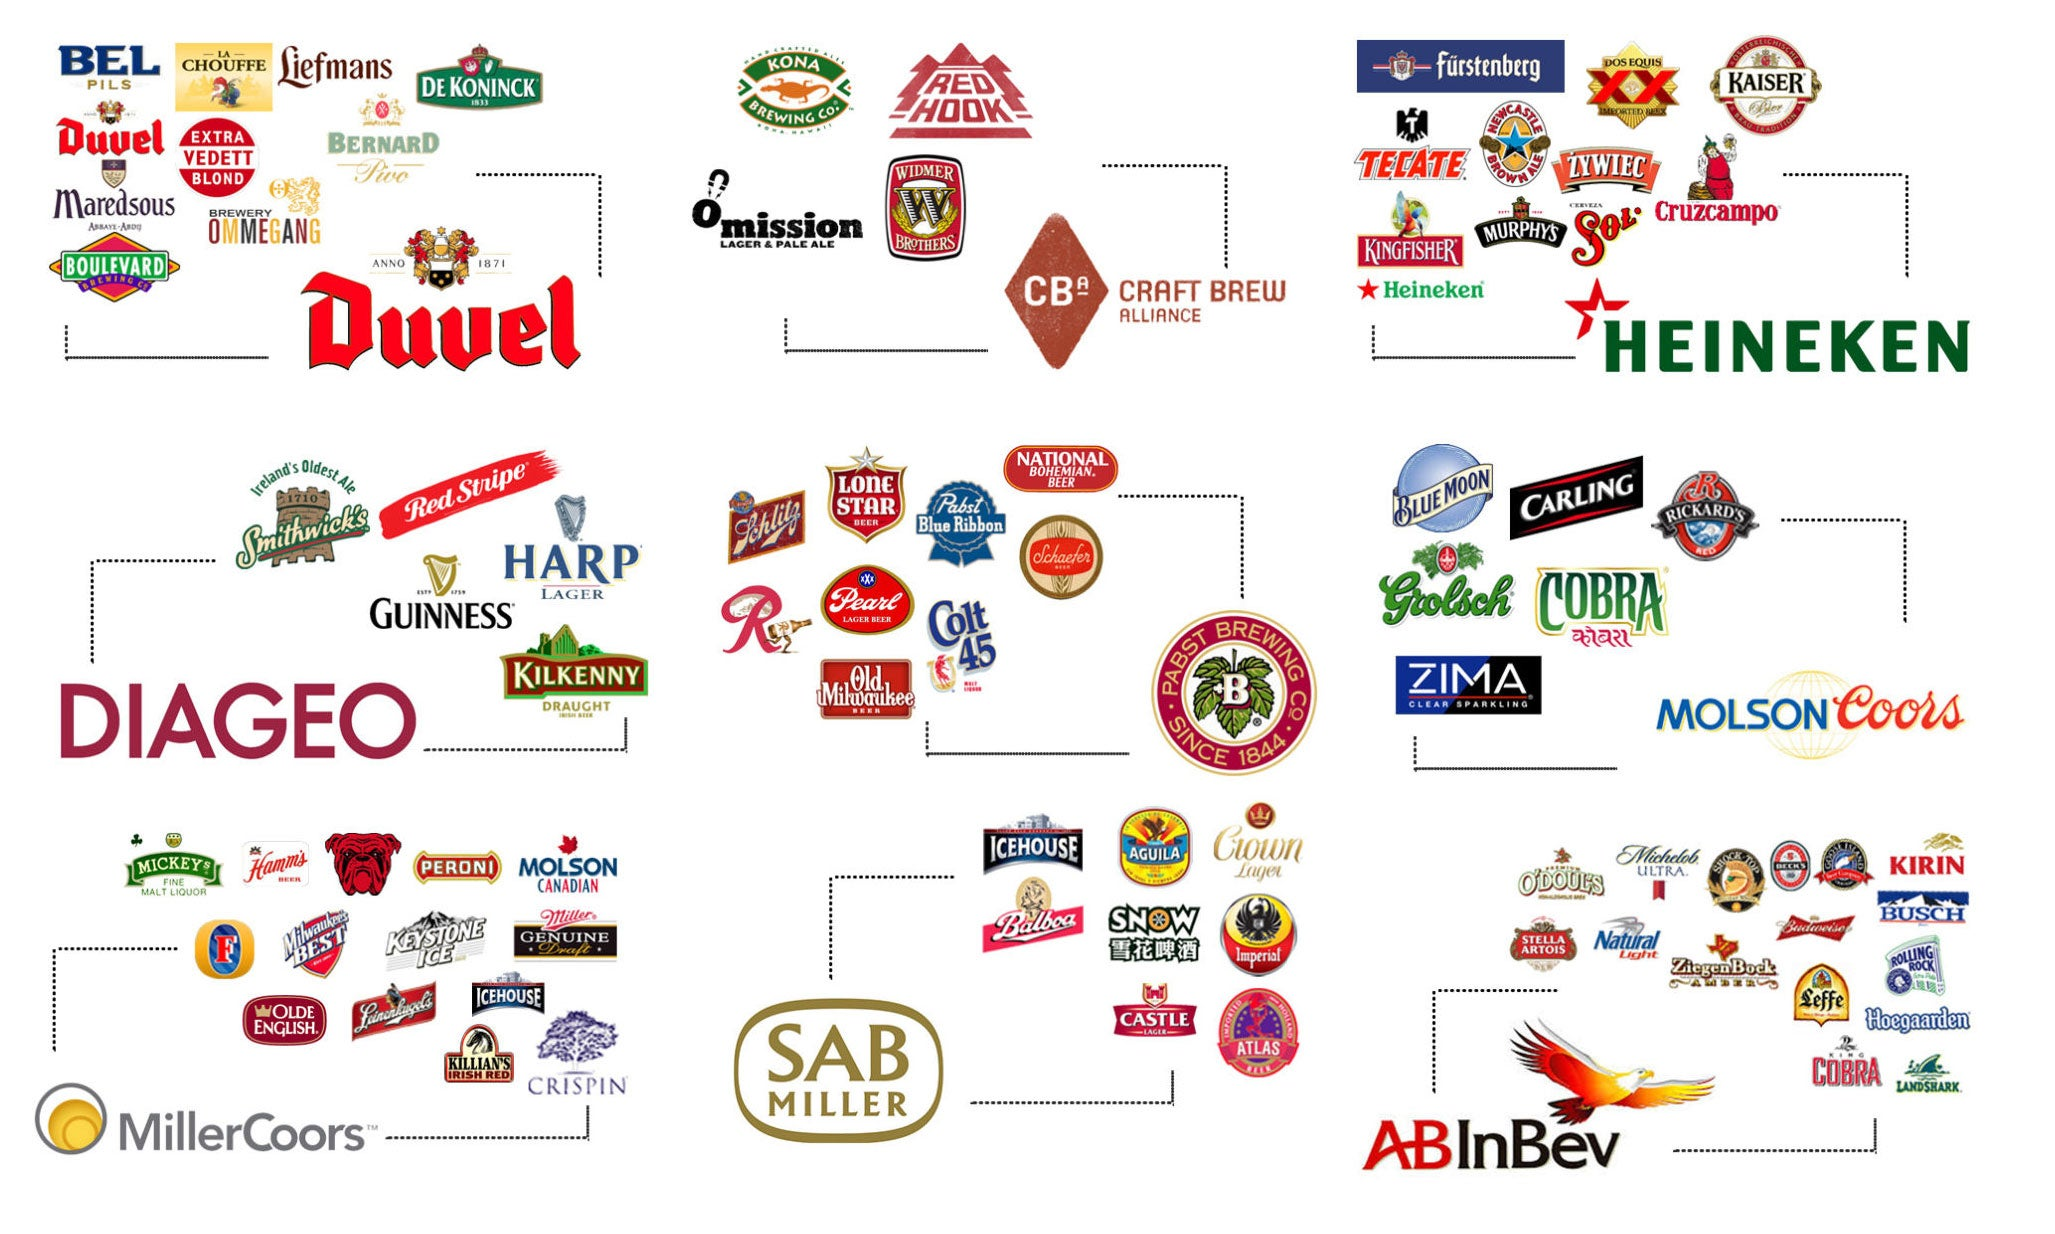 Fascinating graphics show who owns all the major brands in the world